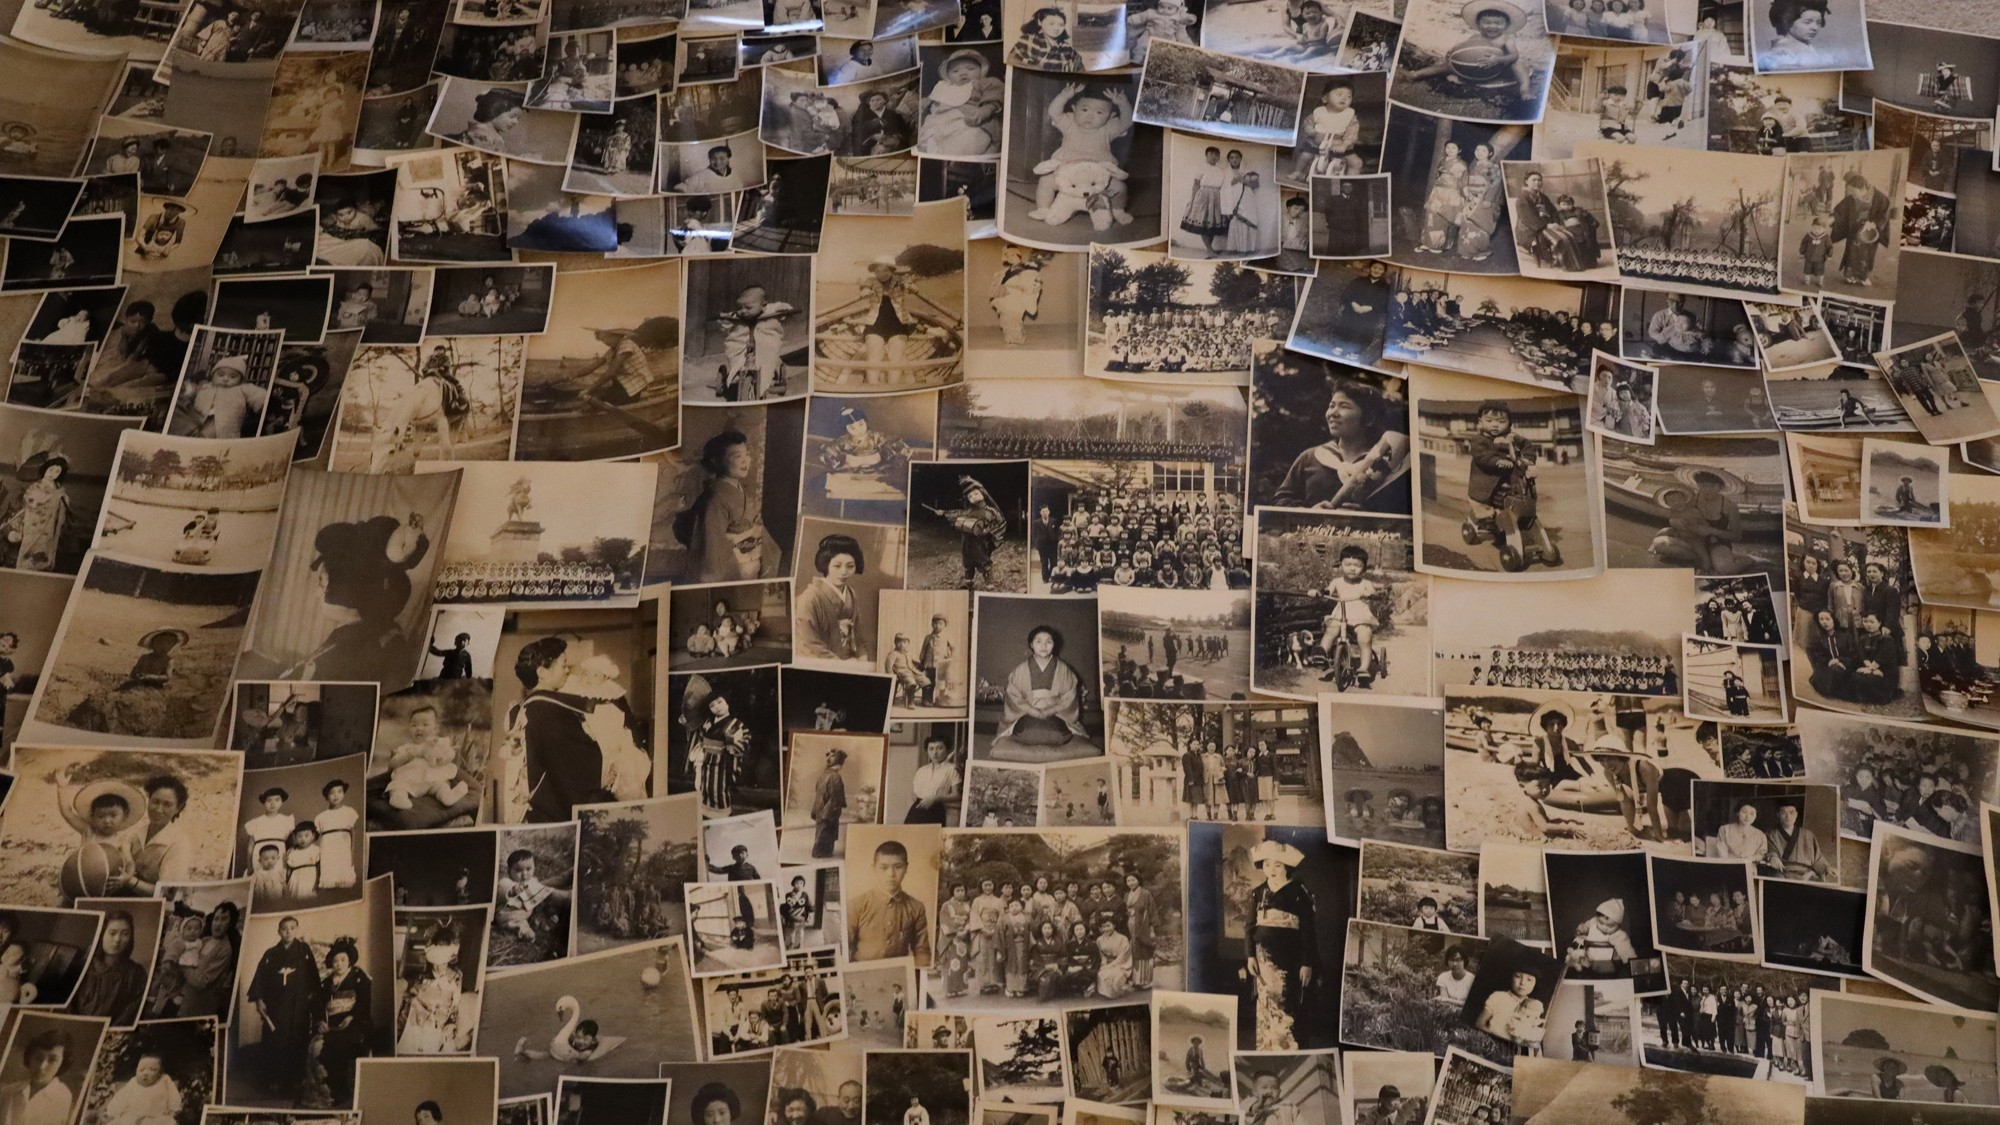 Collection of photographs from Untitled.Showa